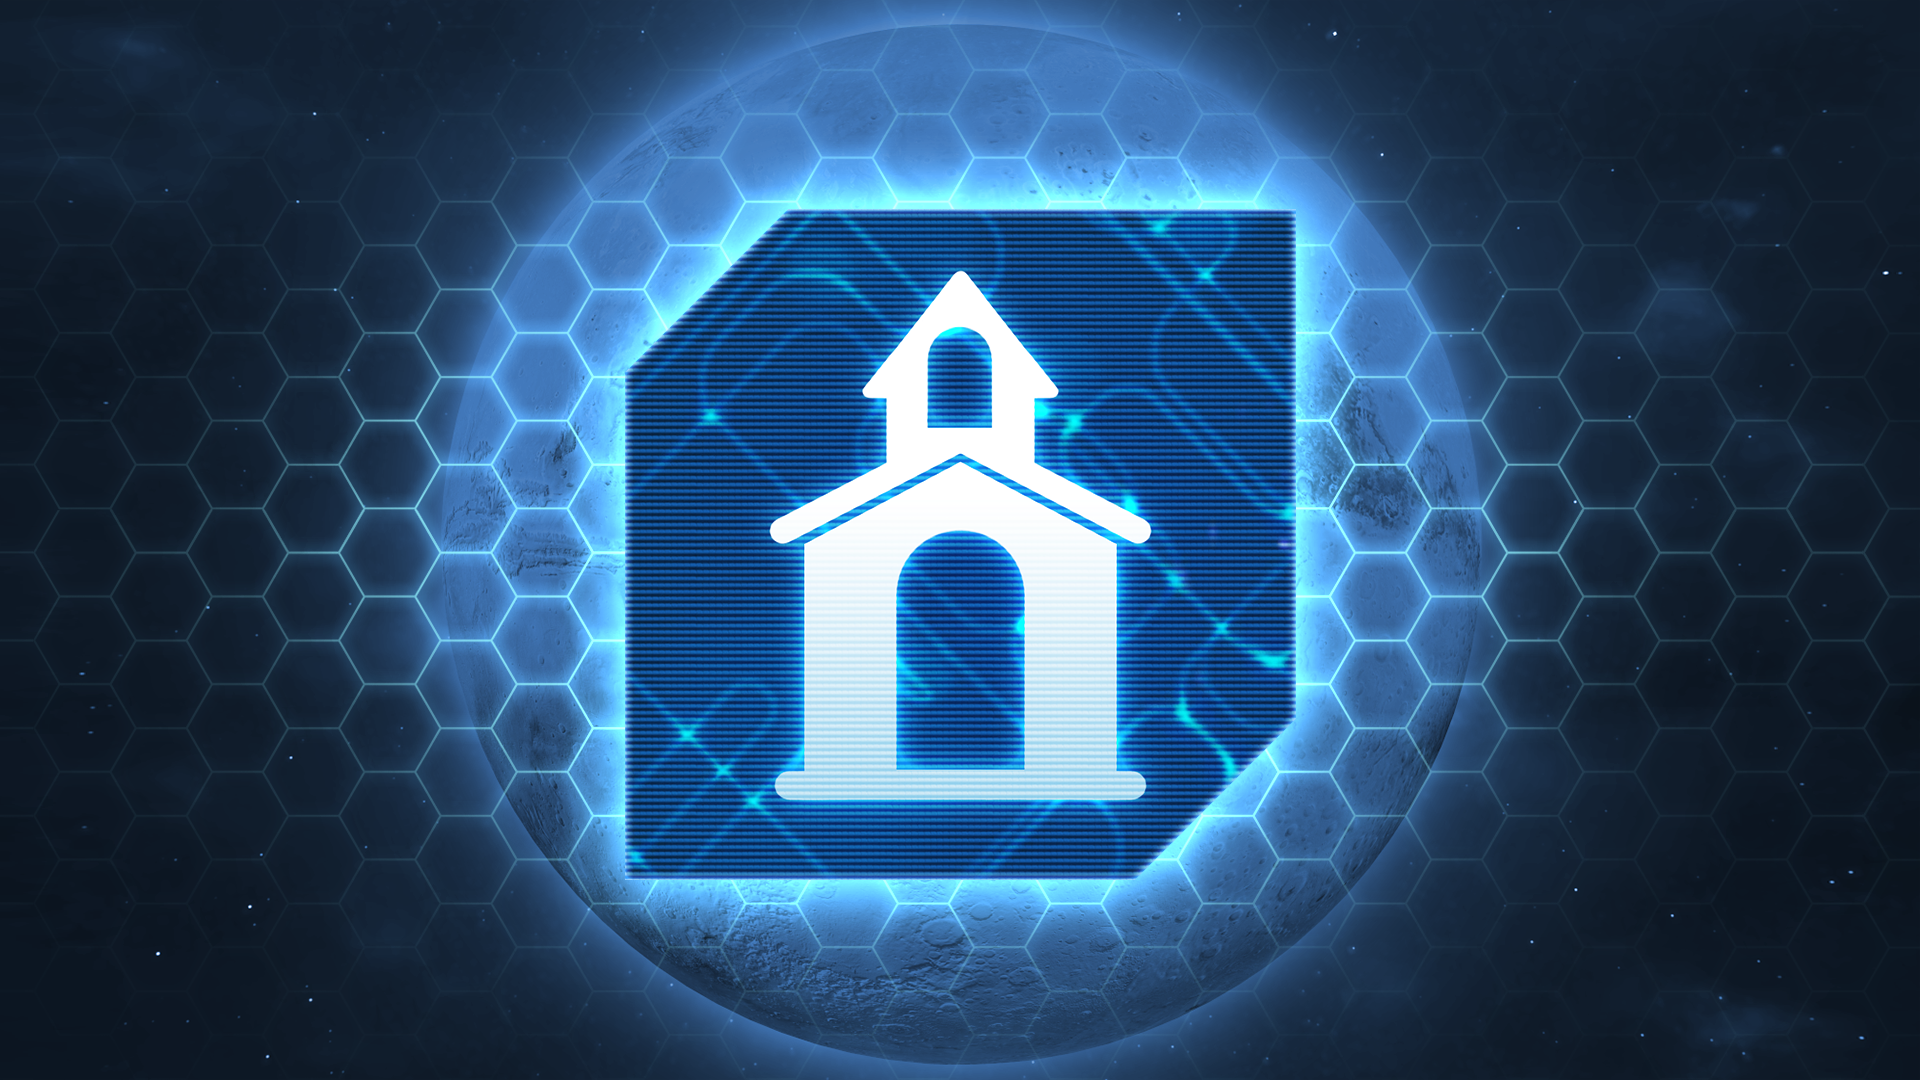 Icon for The New Ark